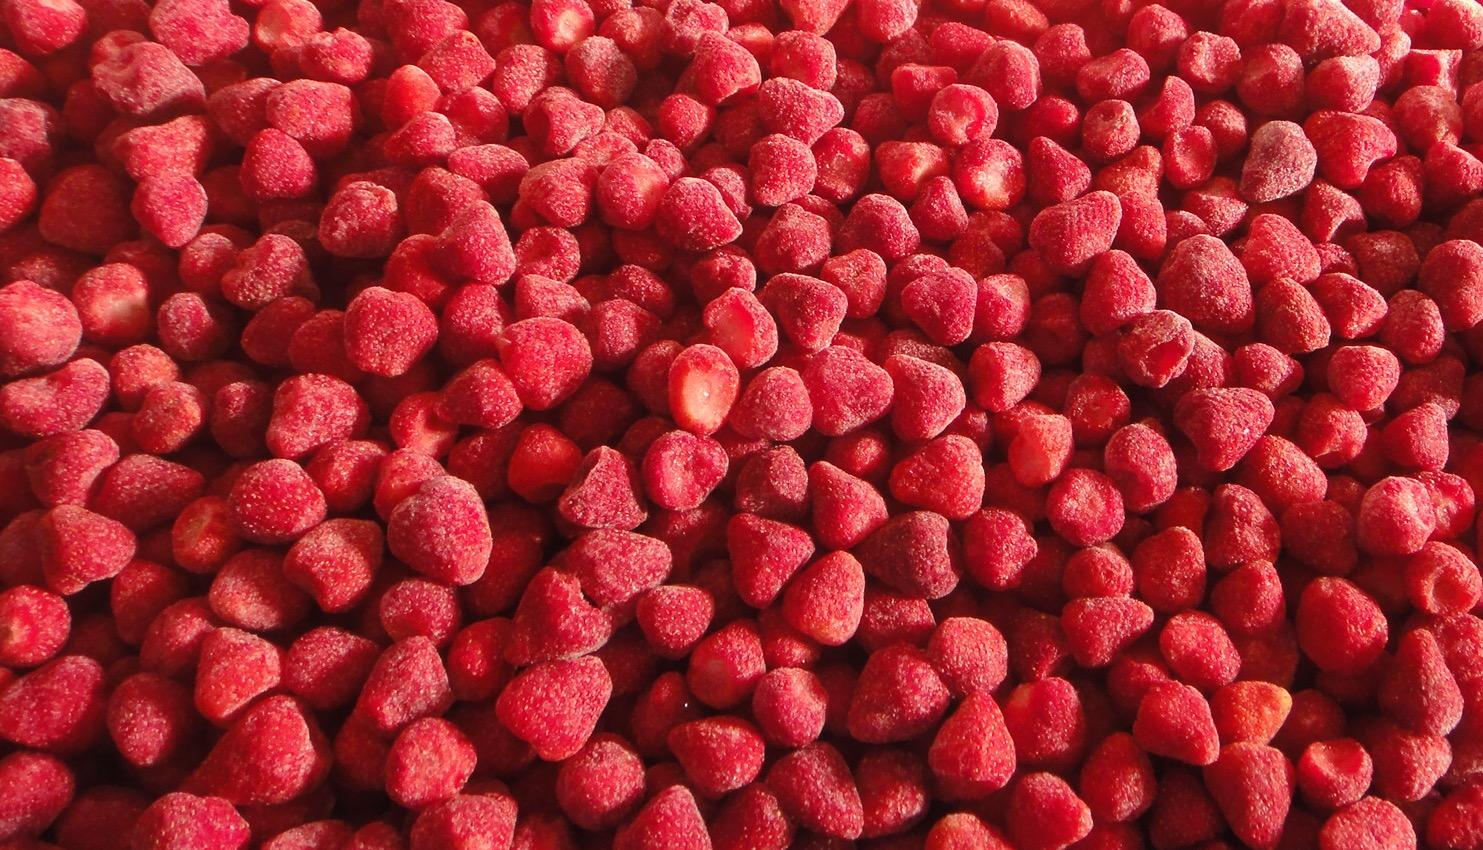 IQF Strawberries,Frozen Whole Strawberries,IQF Strawberry,American no.13 variety 5